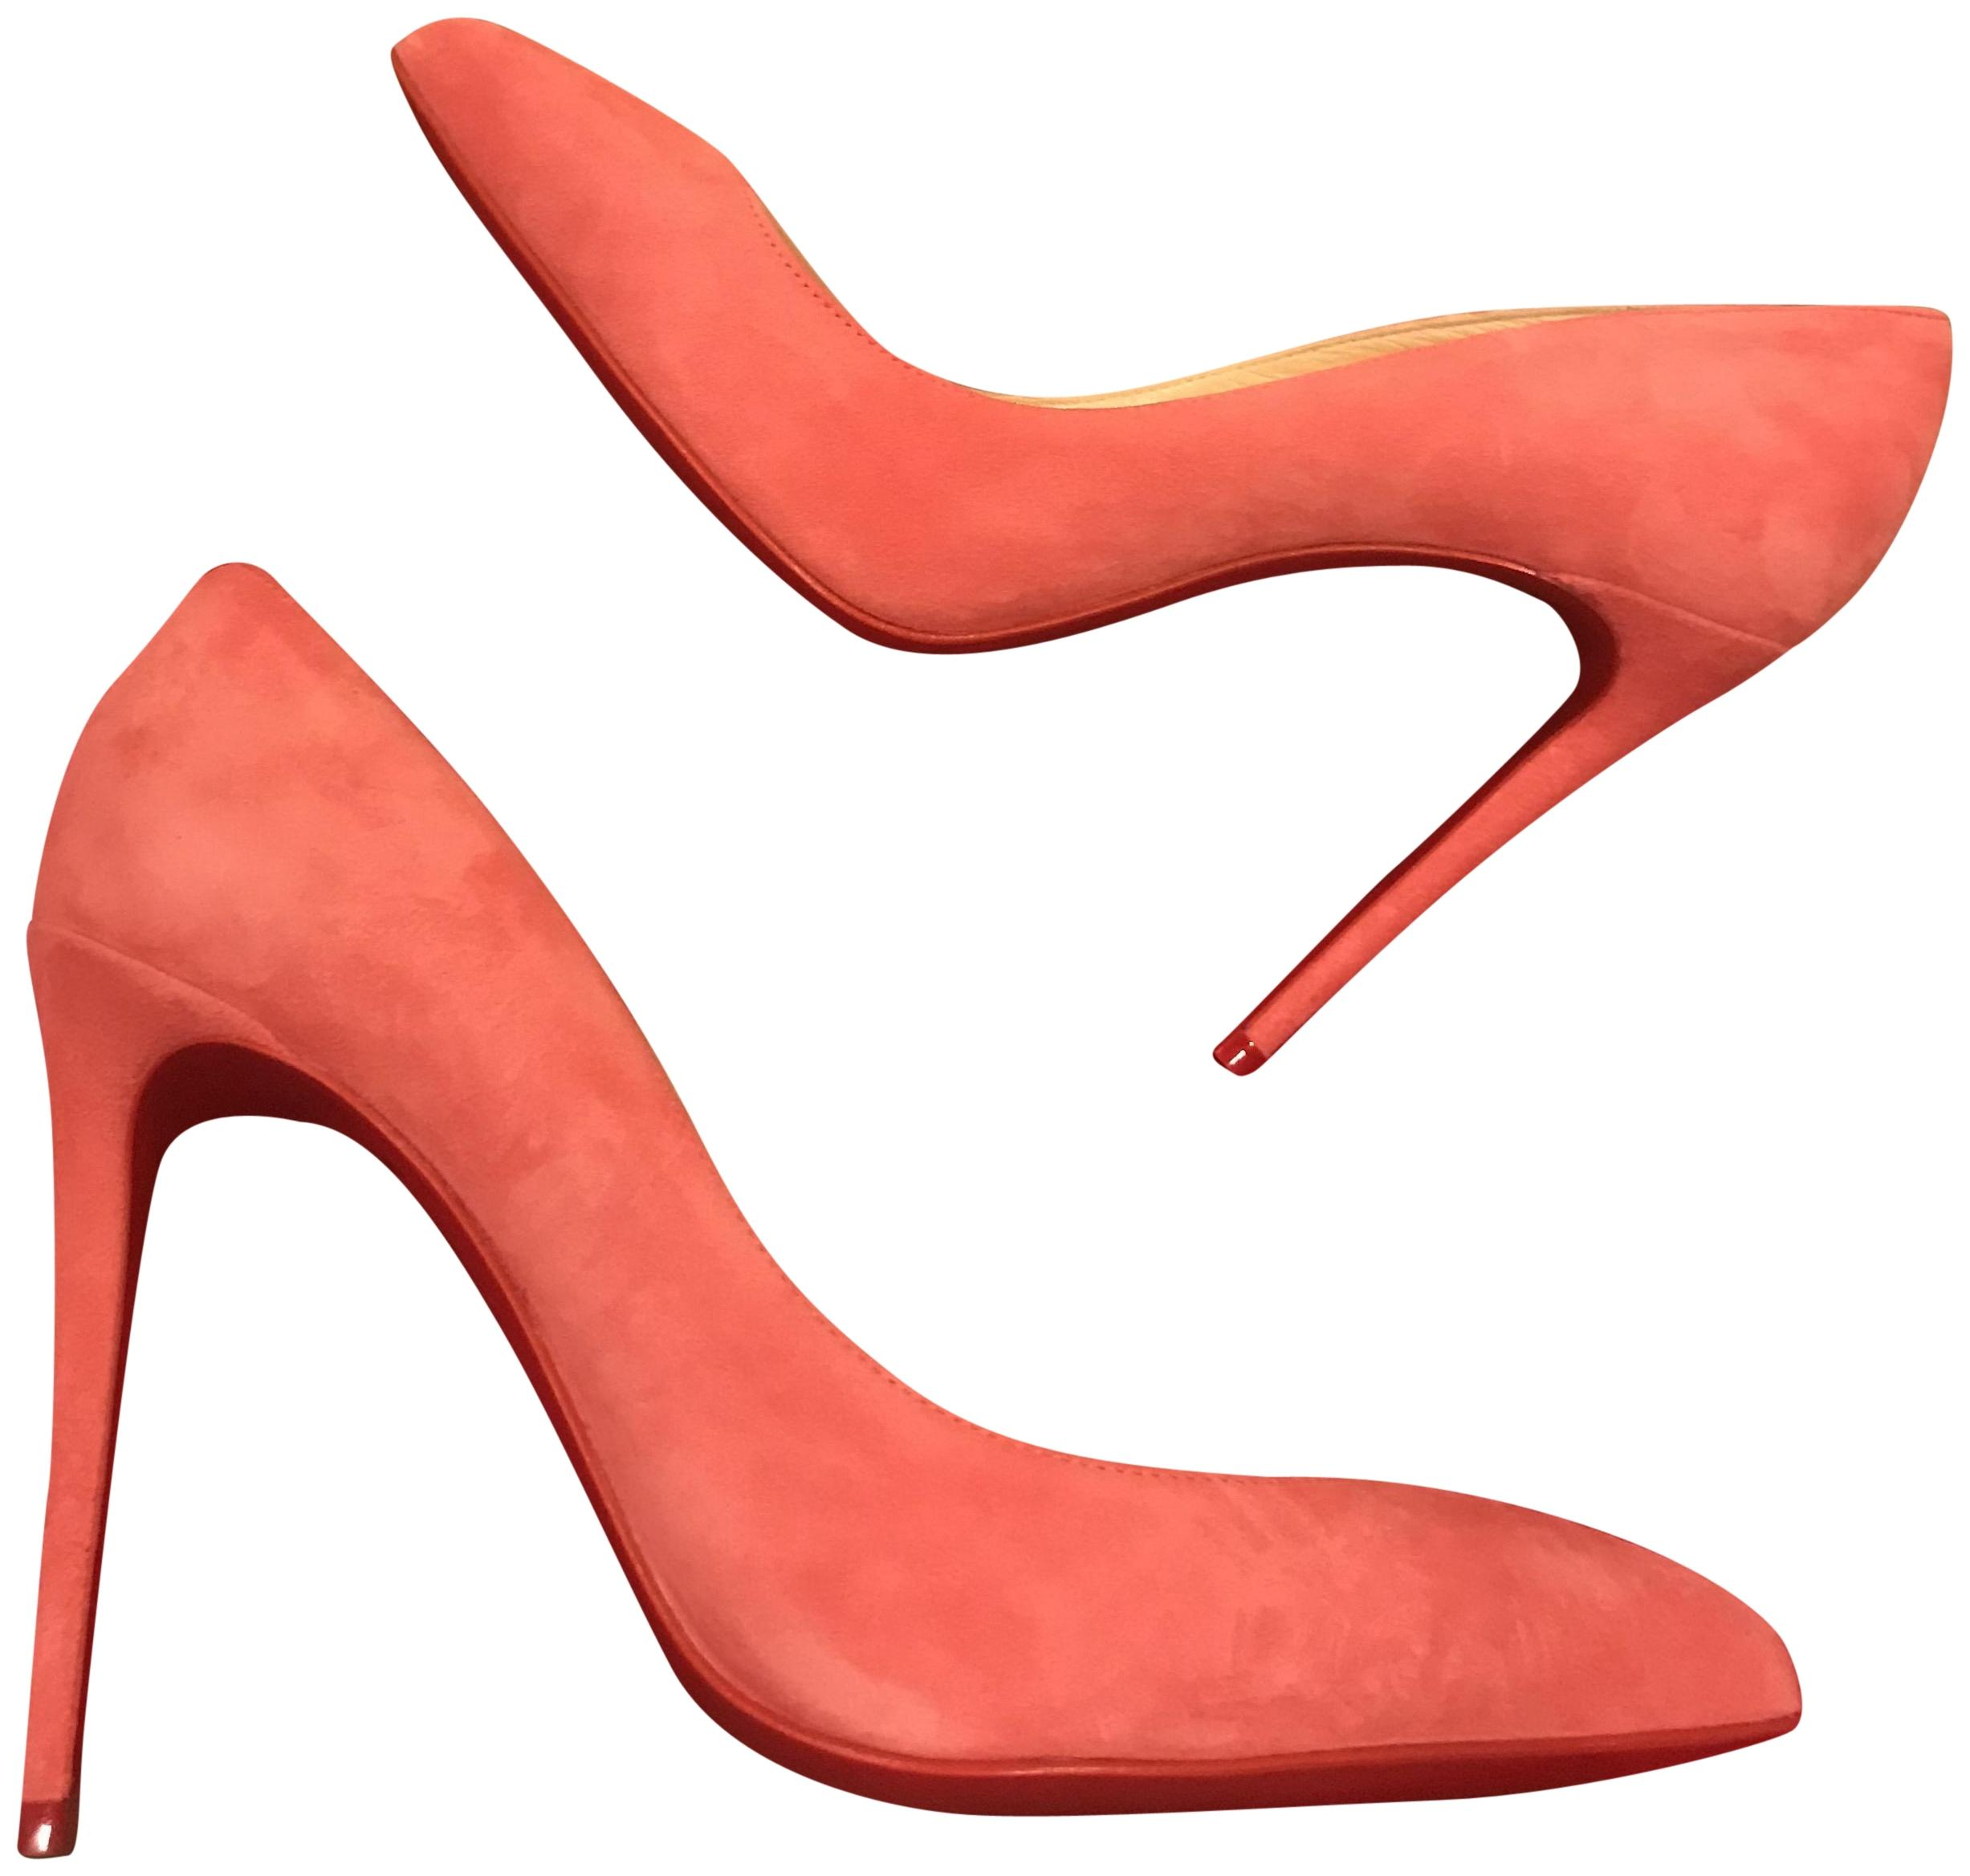 961c50d06792 Christian Louboutin Begonia (Pink) Pigalle Follies 100 Suede Pumps Size  Size Size EU 39.5 (Approx. US 9.5) Regular (M